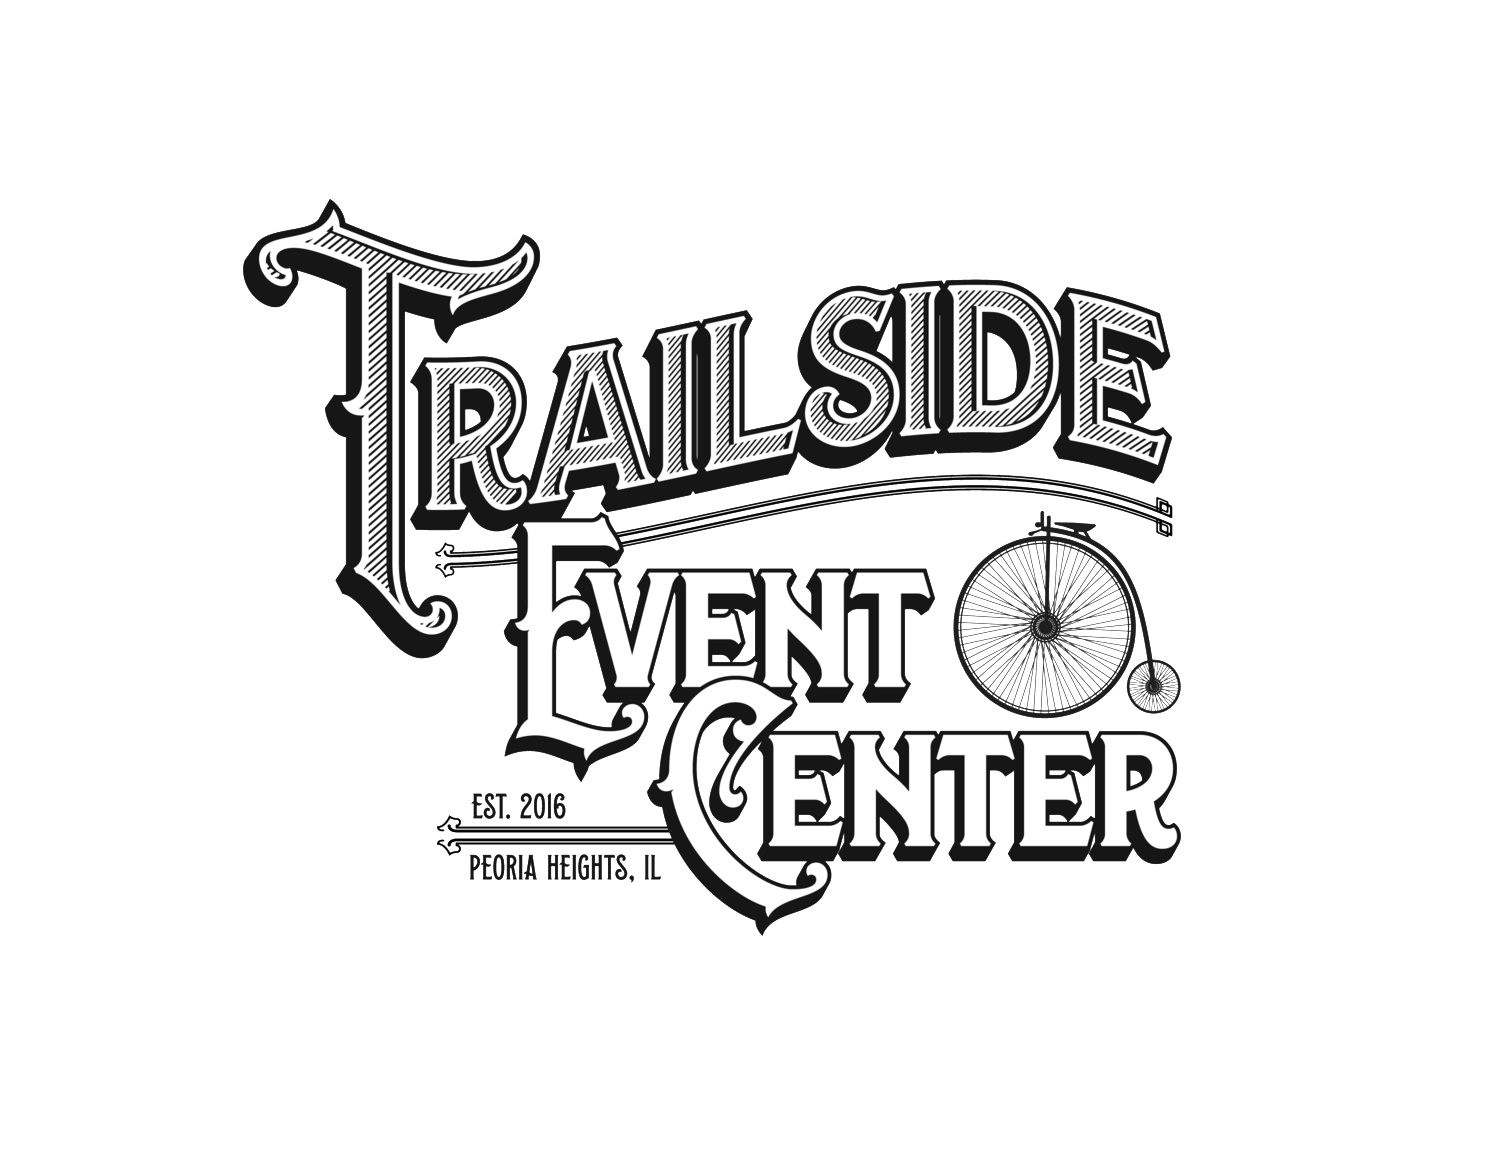 Trailside Event Center